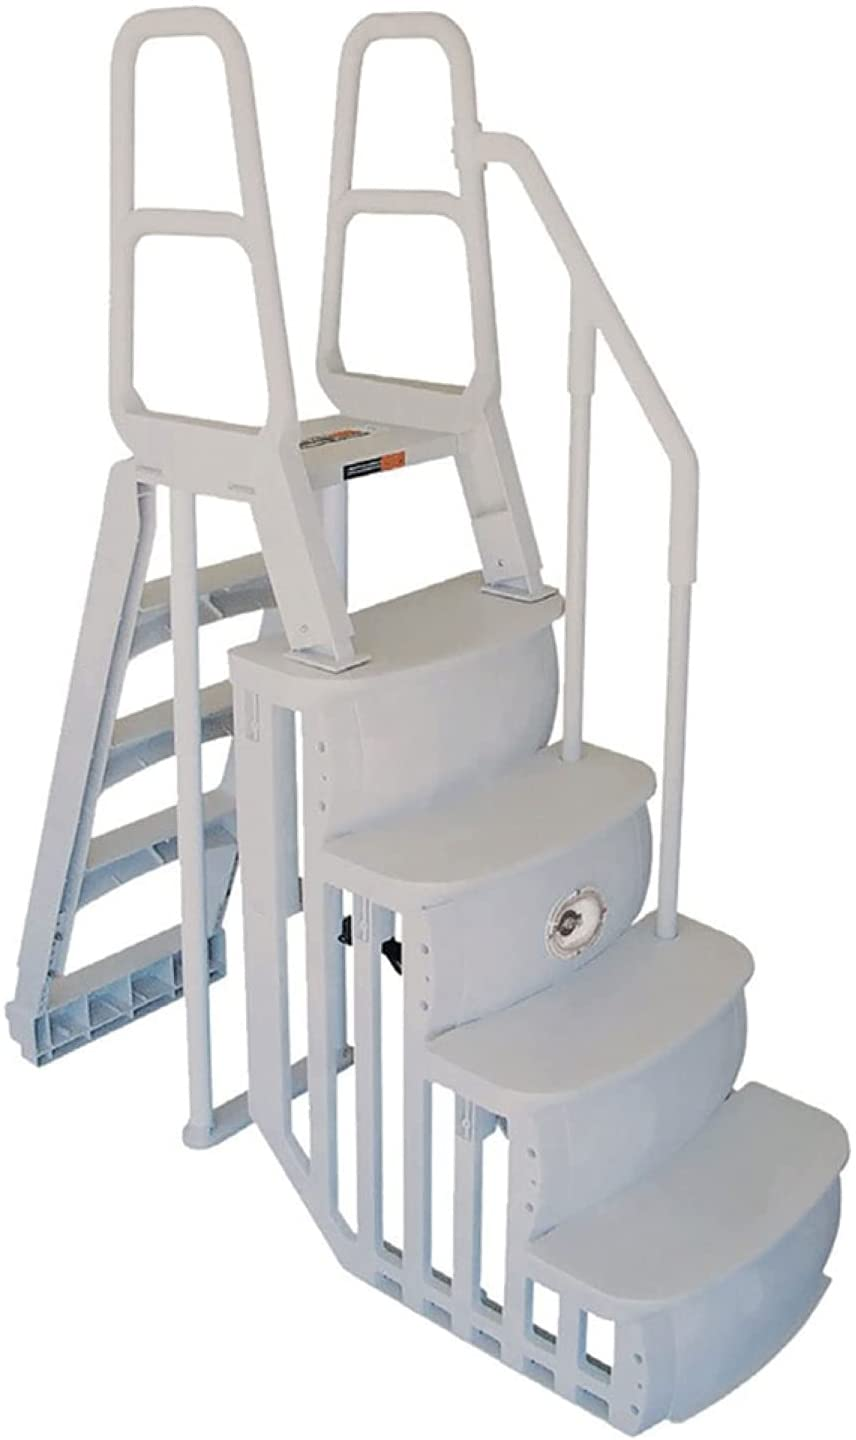 Main Access 48-54 Inch Heavy-Duty Adjustable Above Ground Swimming Pool Smart Step and Ladder Entry